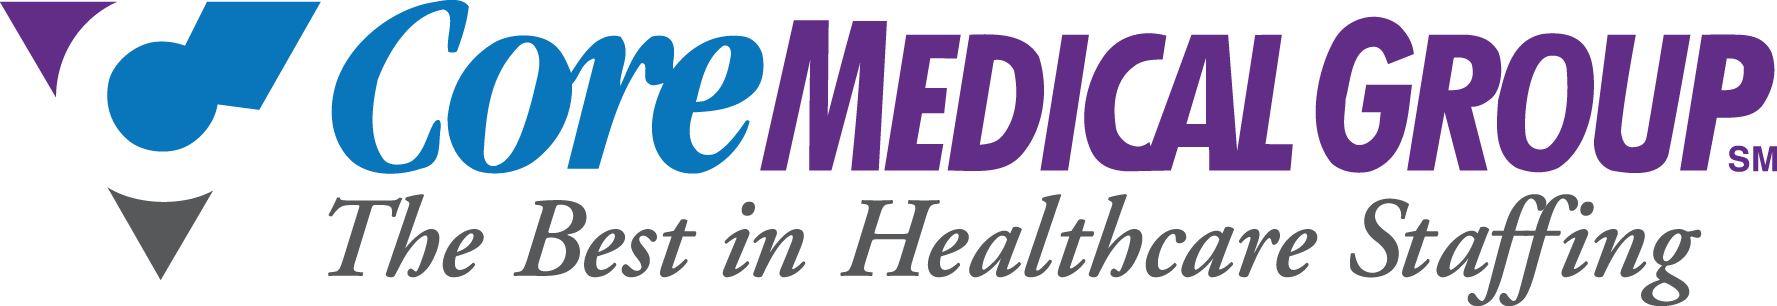 CoreMedical Group logo